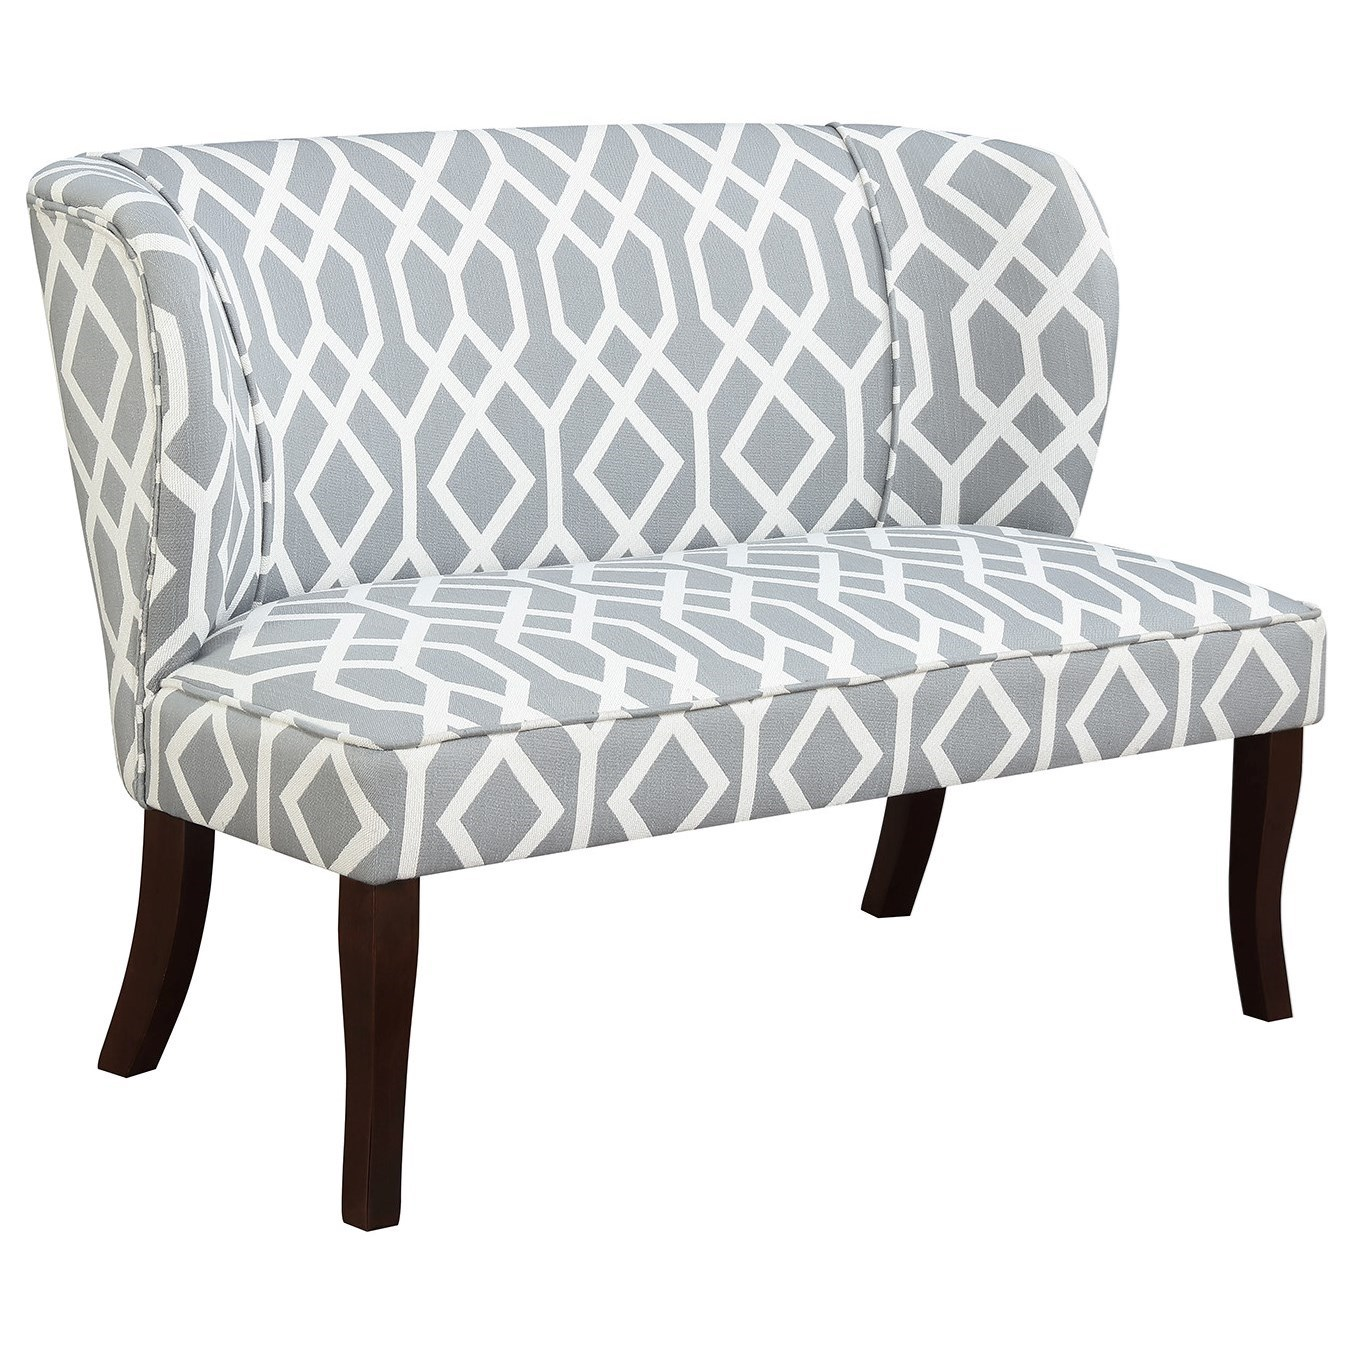 Hepburn Settee Accent Bench by Emerald at Northeast Factory Direct